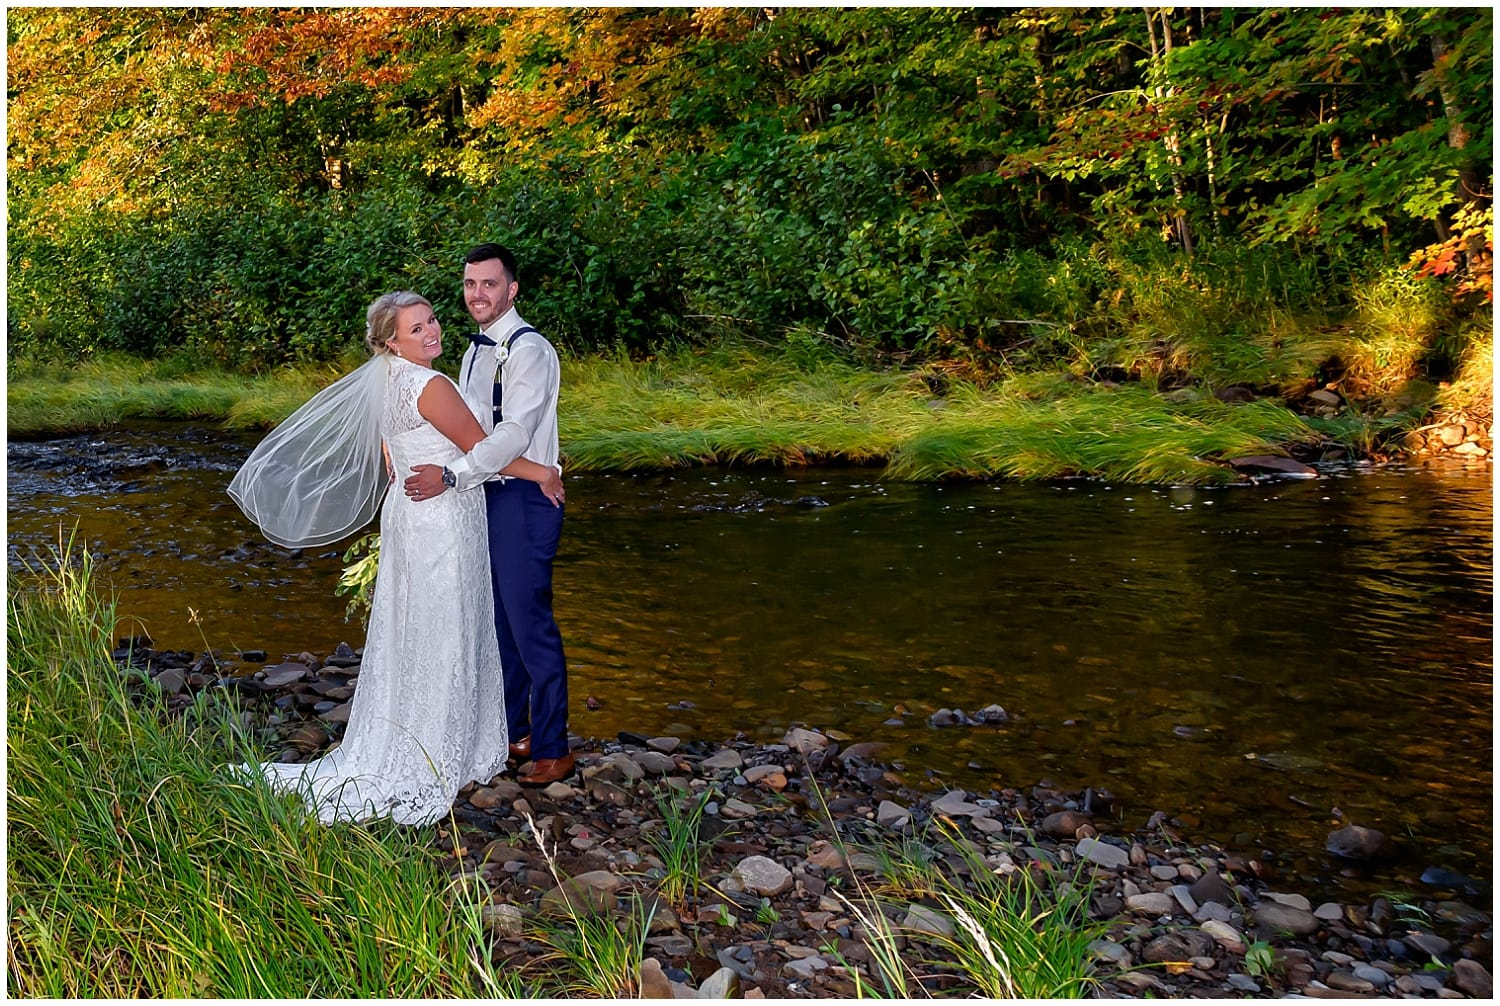 The bride and groom pose for their wedding photos by a meandering river at the barn at Sadie Belle Farm in Hantsport NS.